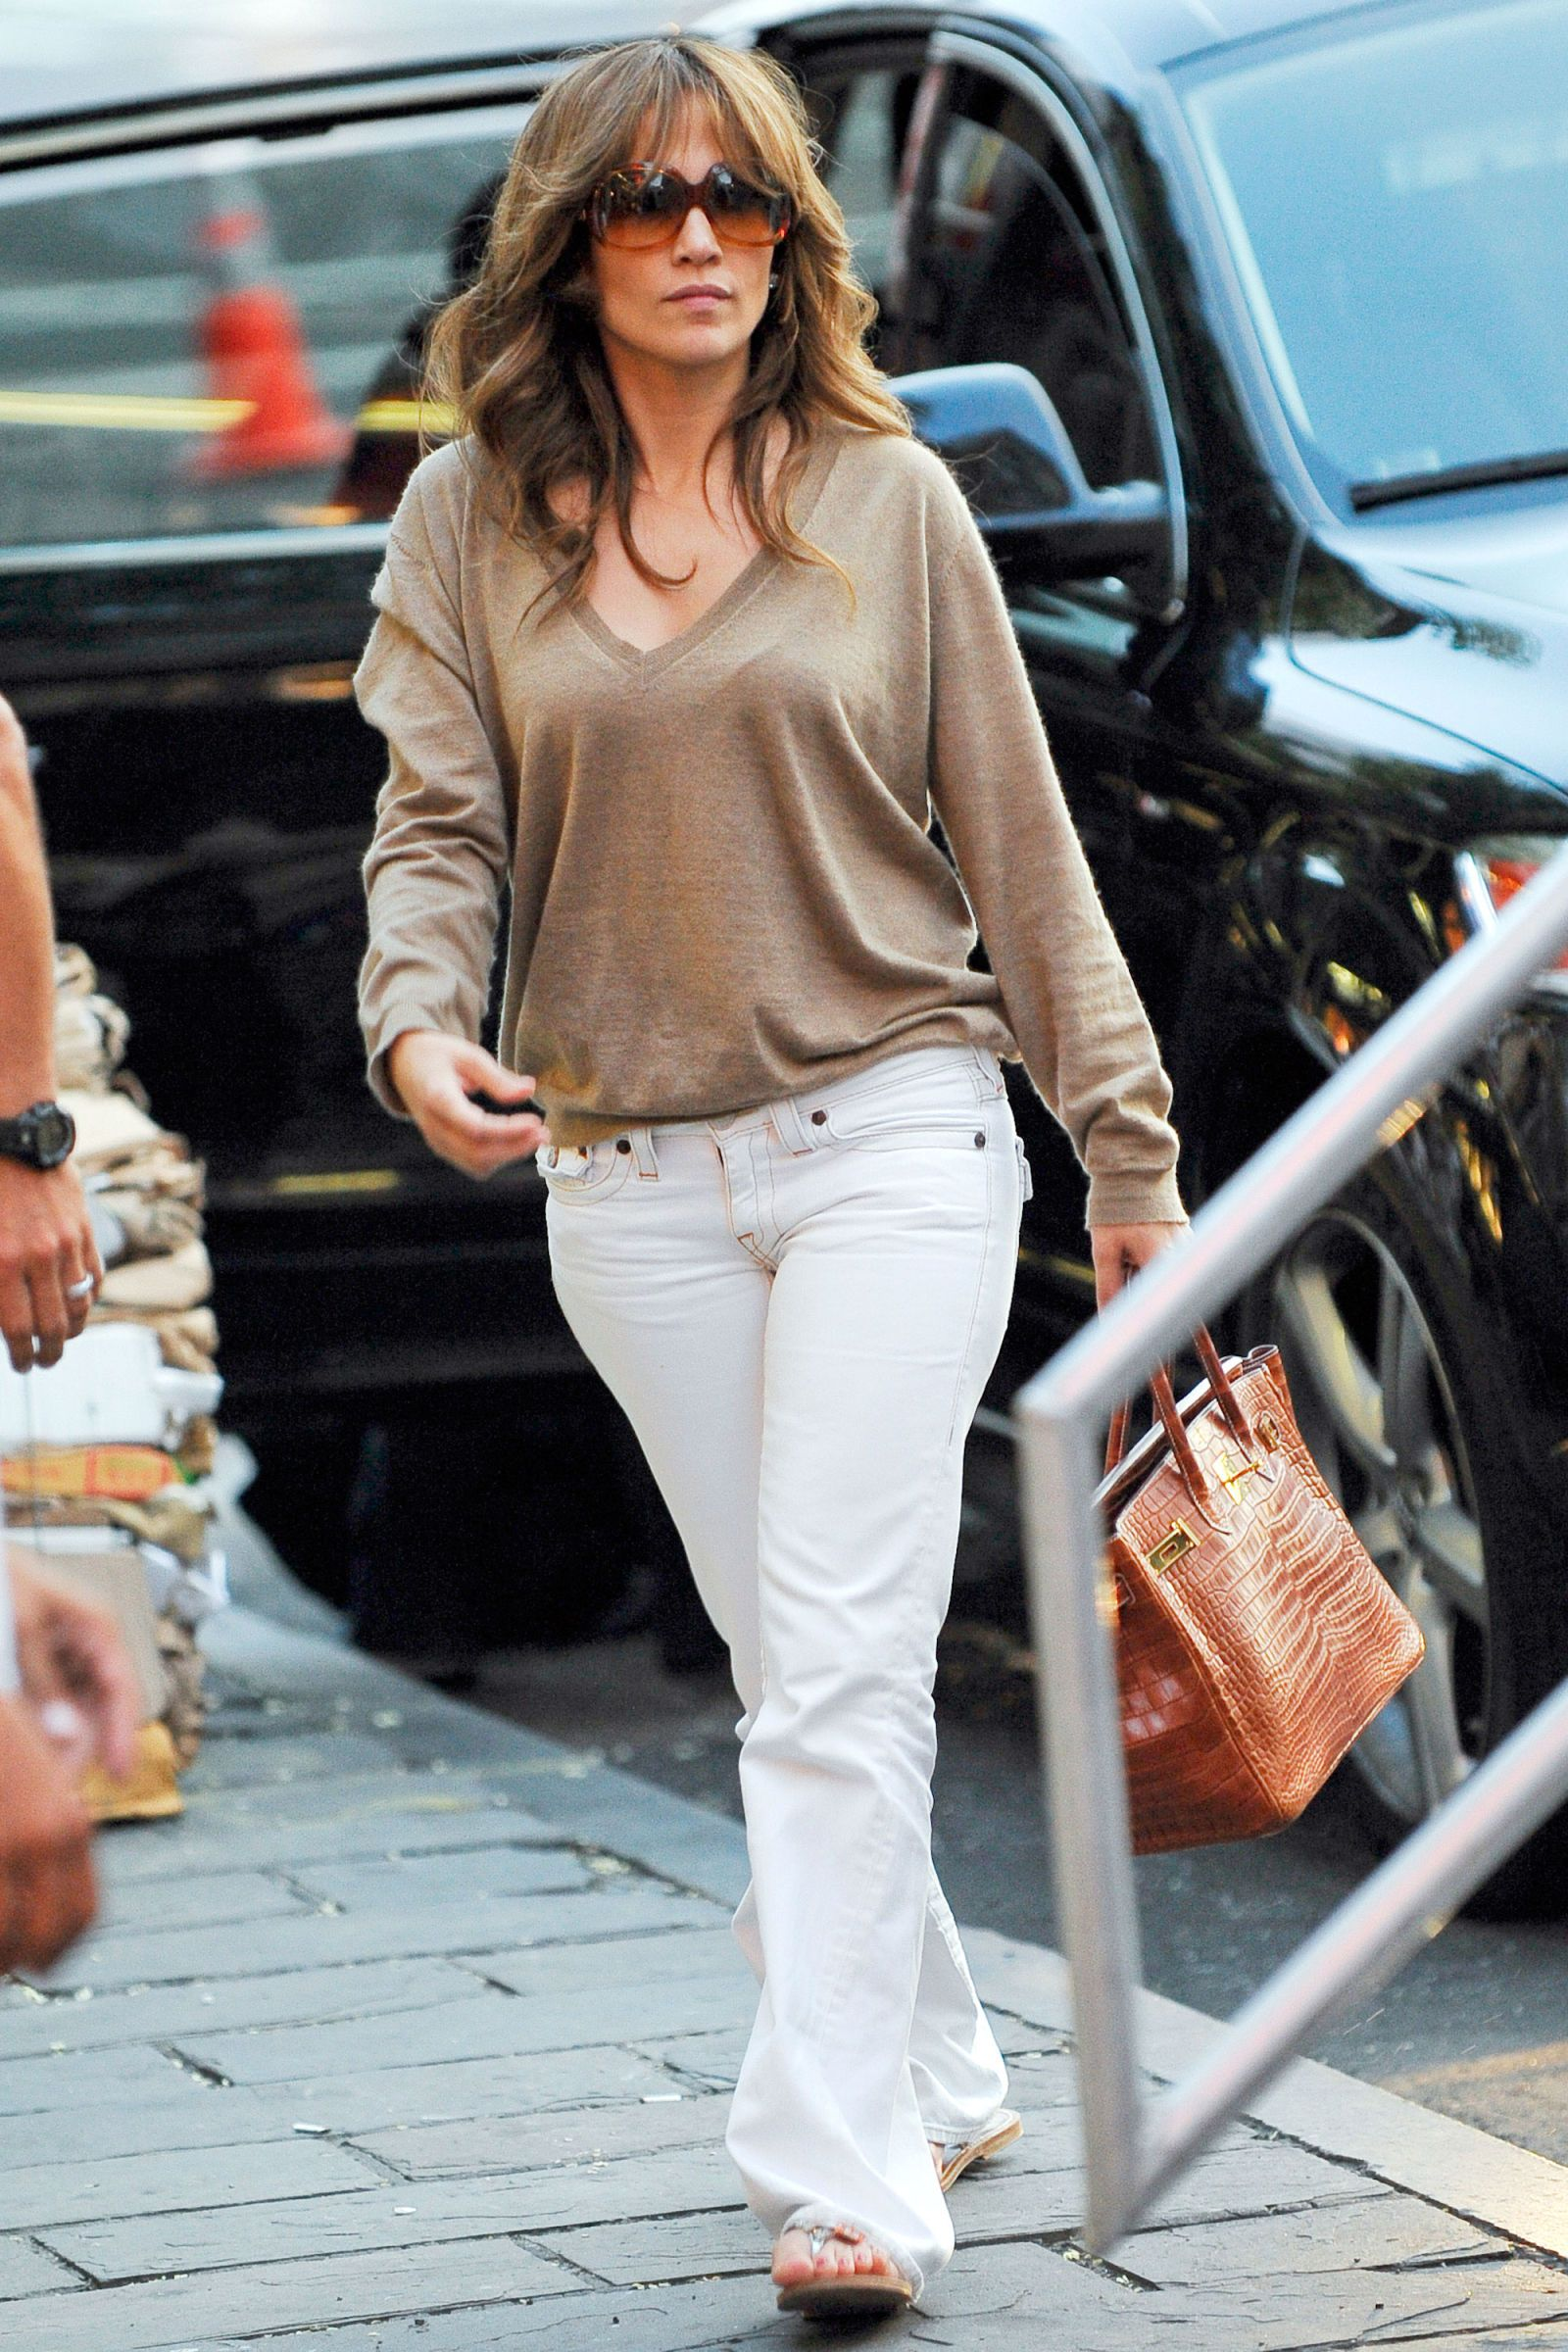 a6cadfae7e83  theLIST  Hermes Birkin Bags - Celebrities with Birkin Bags